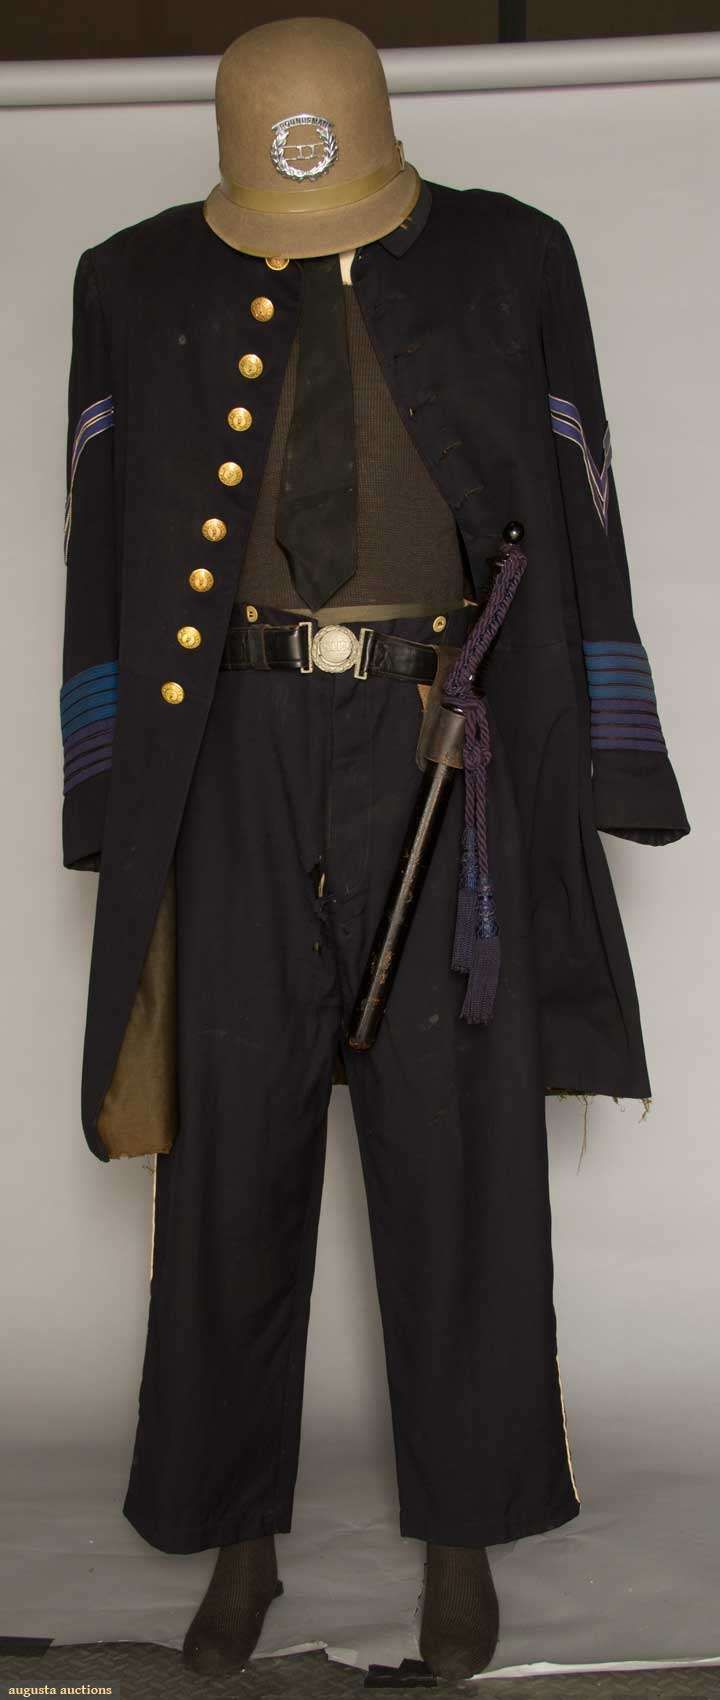 Augusta Auctions: brooklyn police officer's uniform, 1890s ...